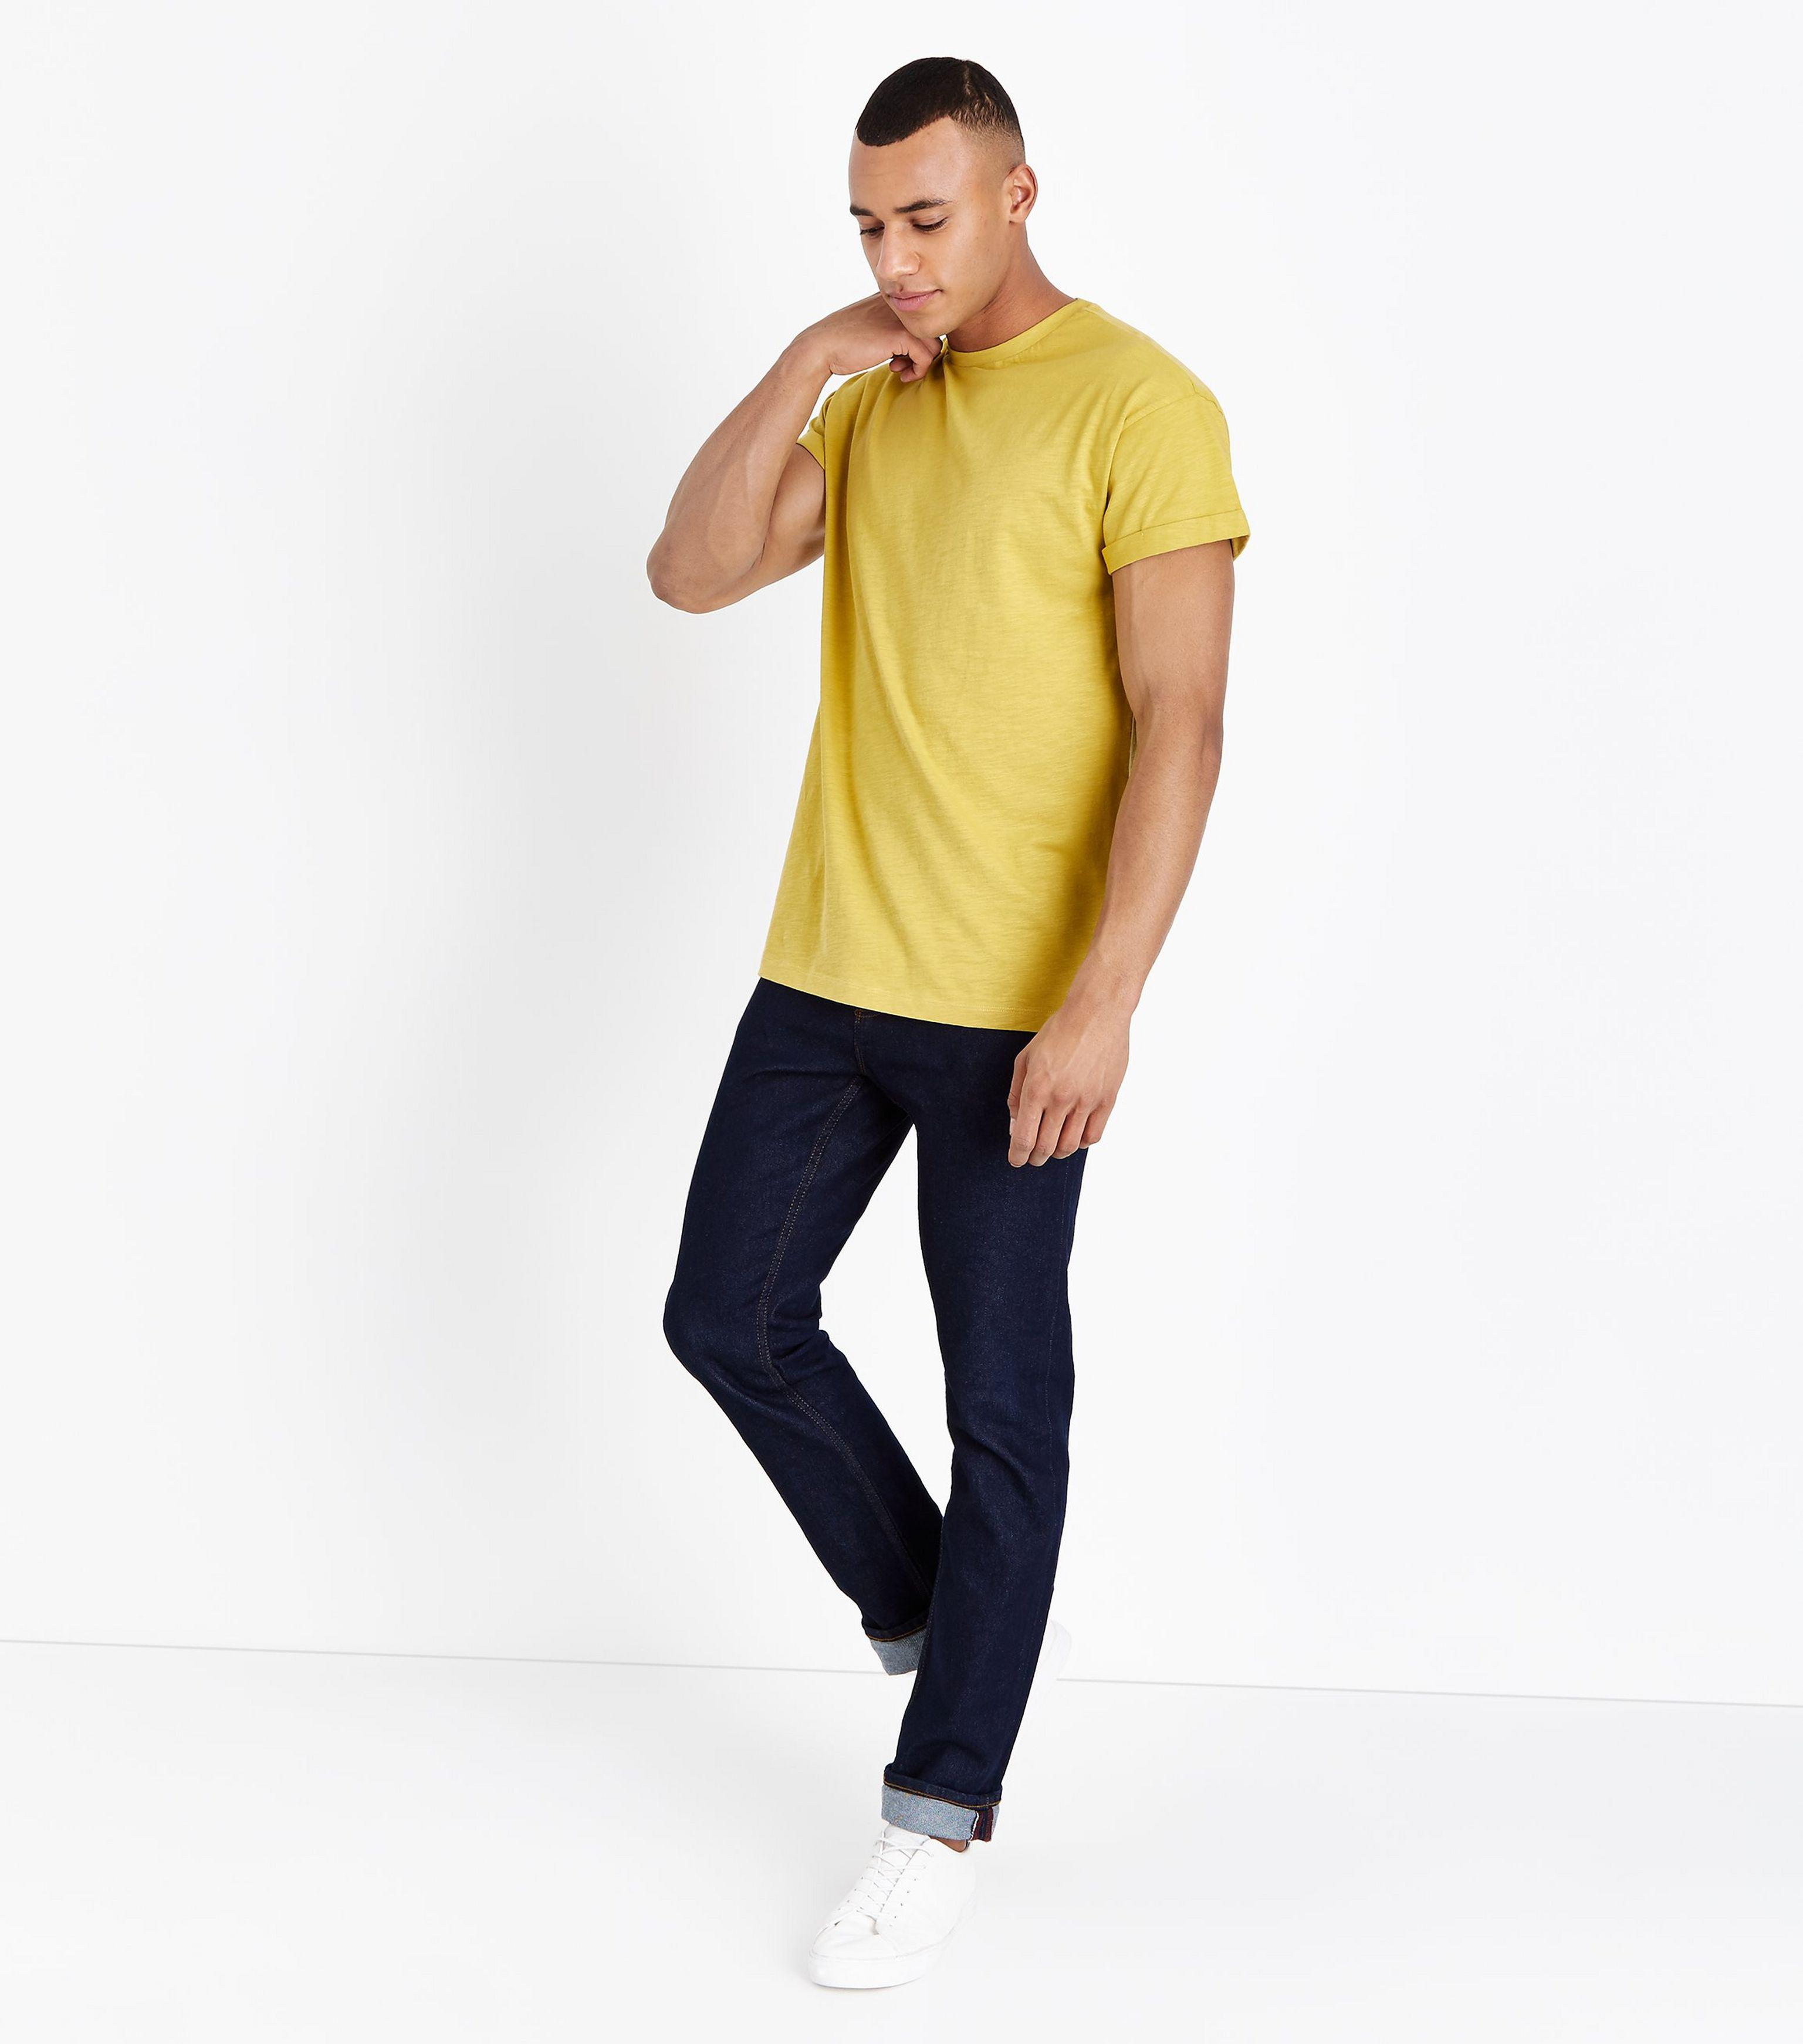 Clearance Marketable T-Shirt With MCMXCII Print In Mustard - Mid yellow New Look Geniue Stockist Online For Sale Buy Authentic Online dHqpfRJHCu